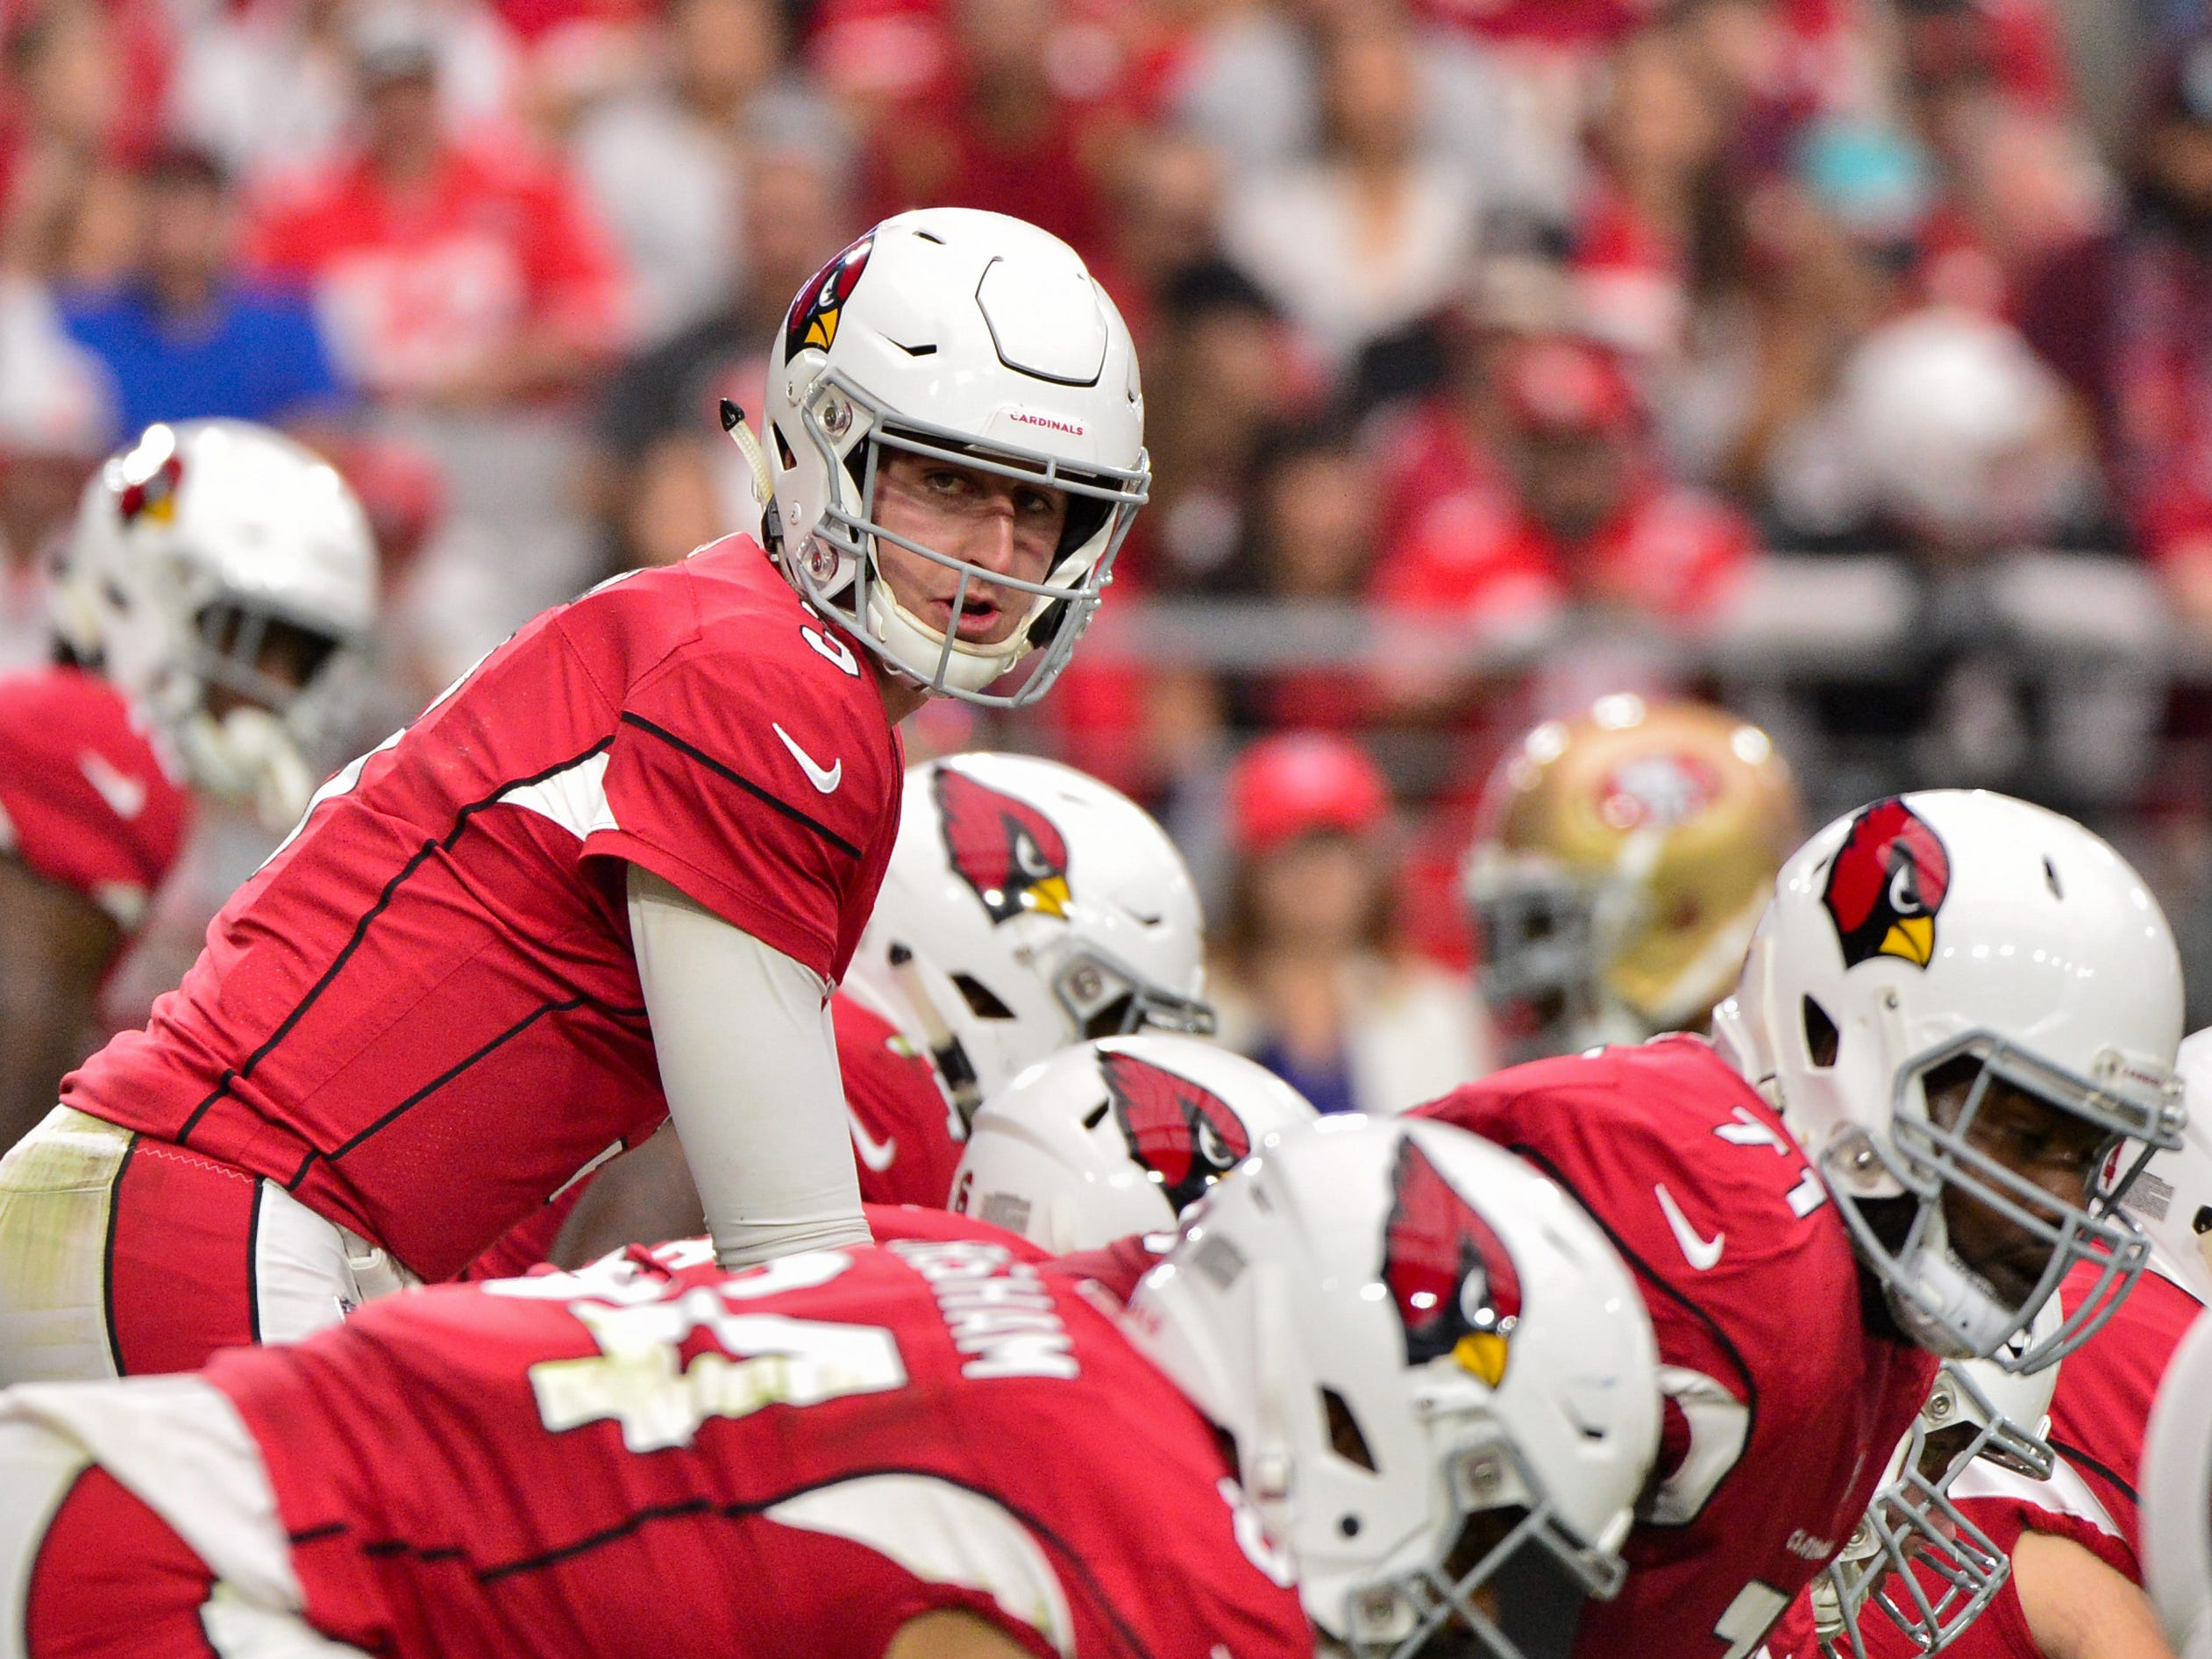 28. Cardinals (29): They can use some inspiration. Maybe signing Aurora, Colo., shooting survivor Zack Golditch will provide it ... while bolstering O-line.